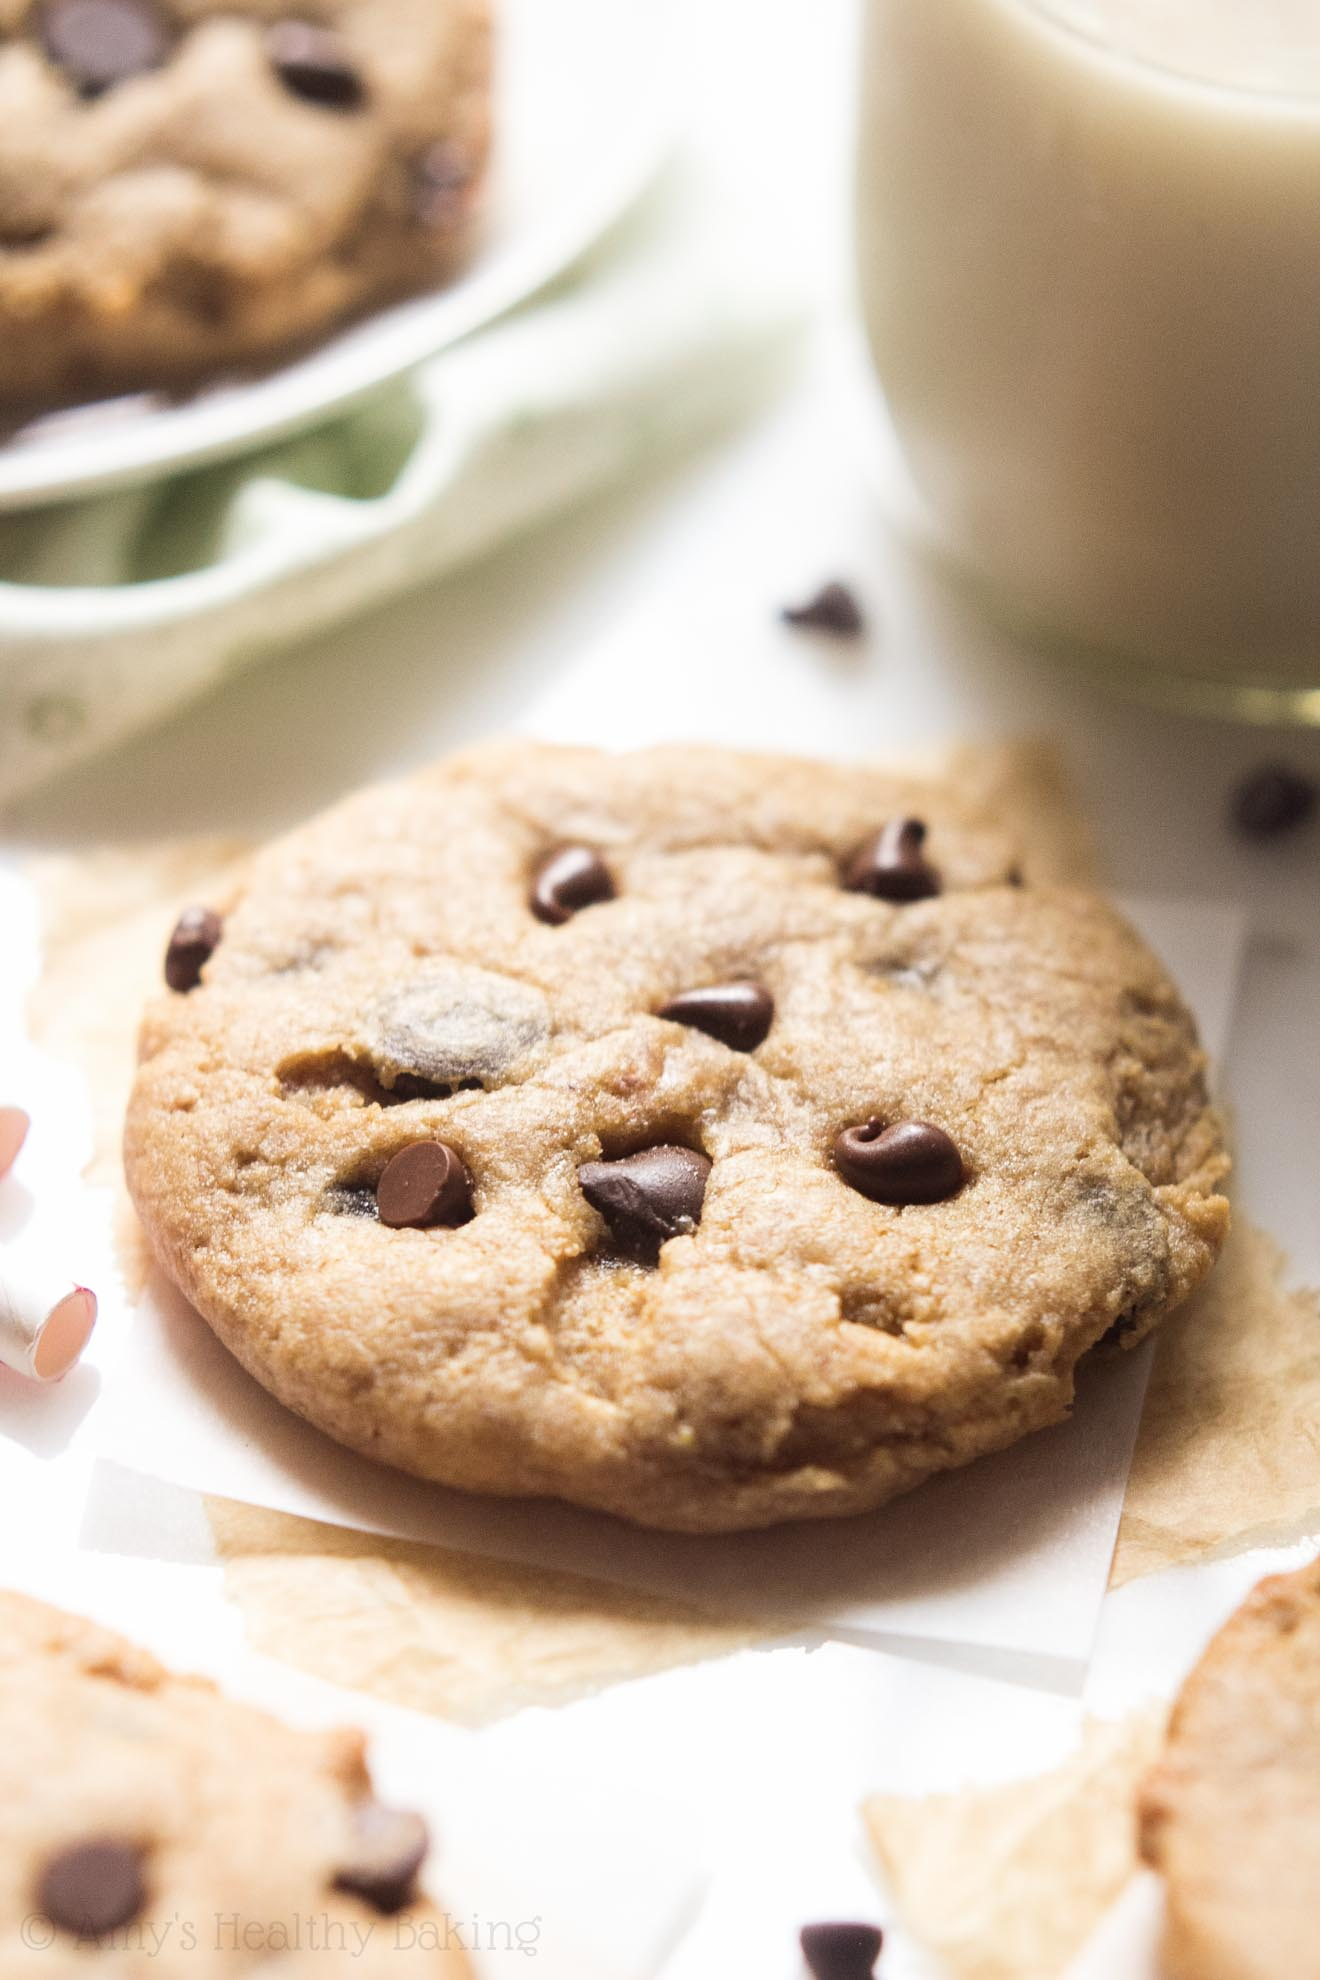 Clean-Eating Chocolate Chip Peanut Butter Banana Cookies -- soft, chewy & SO chocolaty! These skinny cookies don't taste healthy at all!